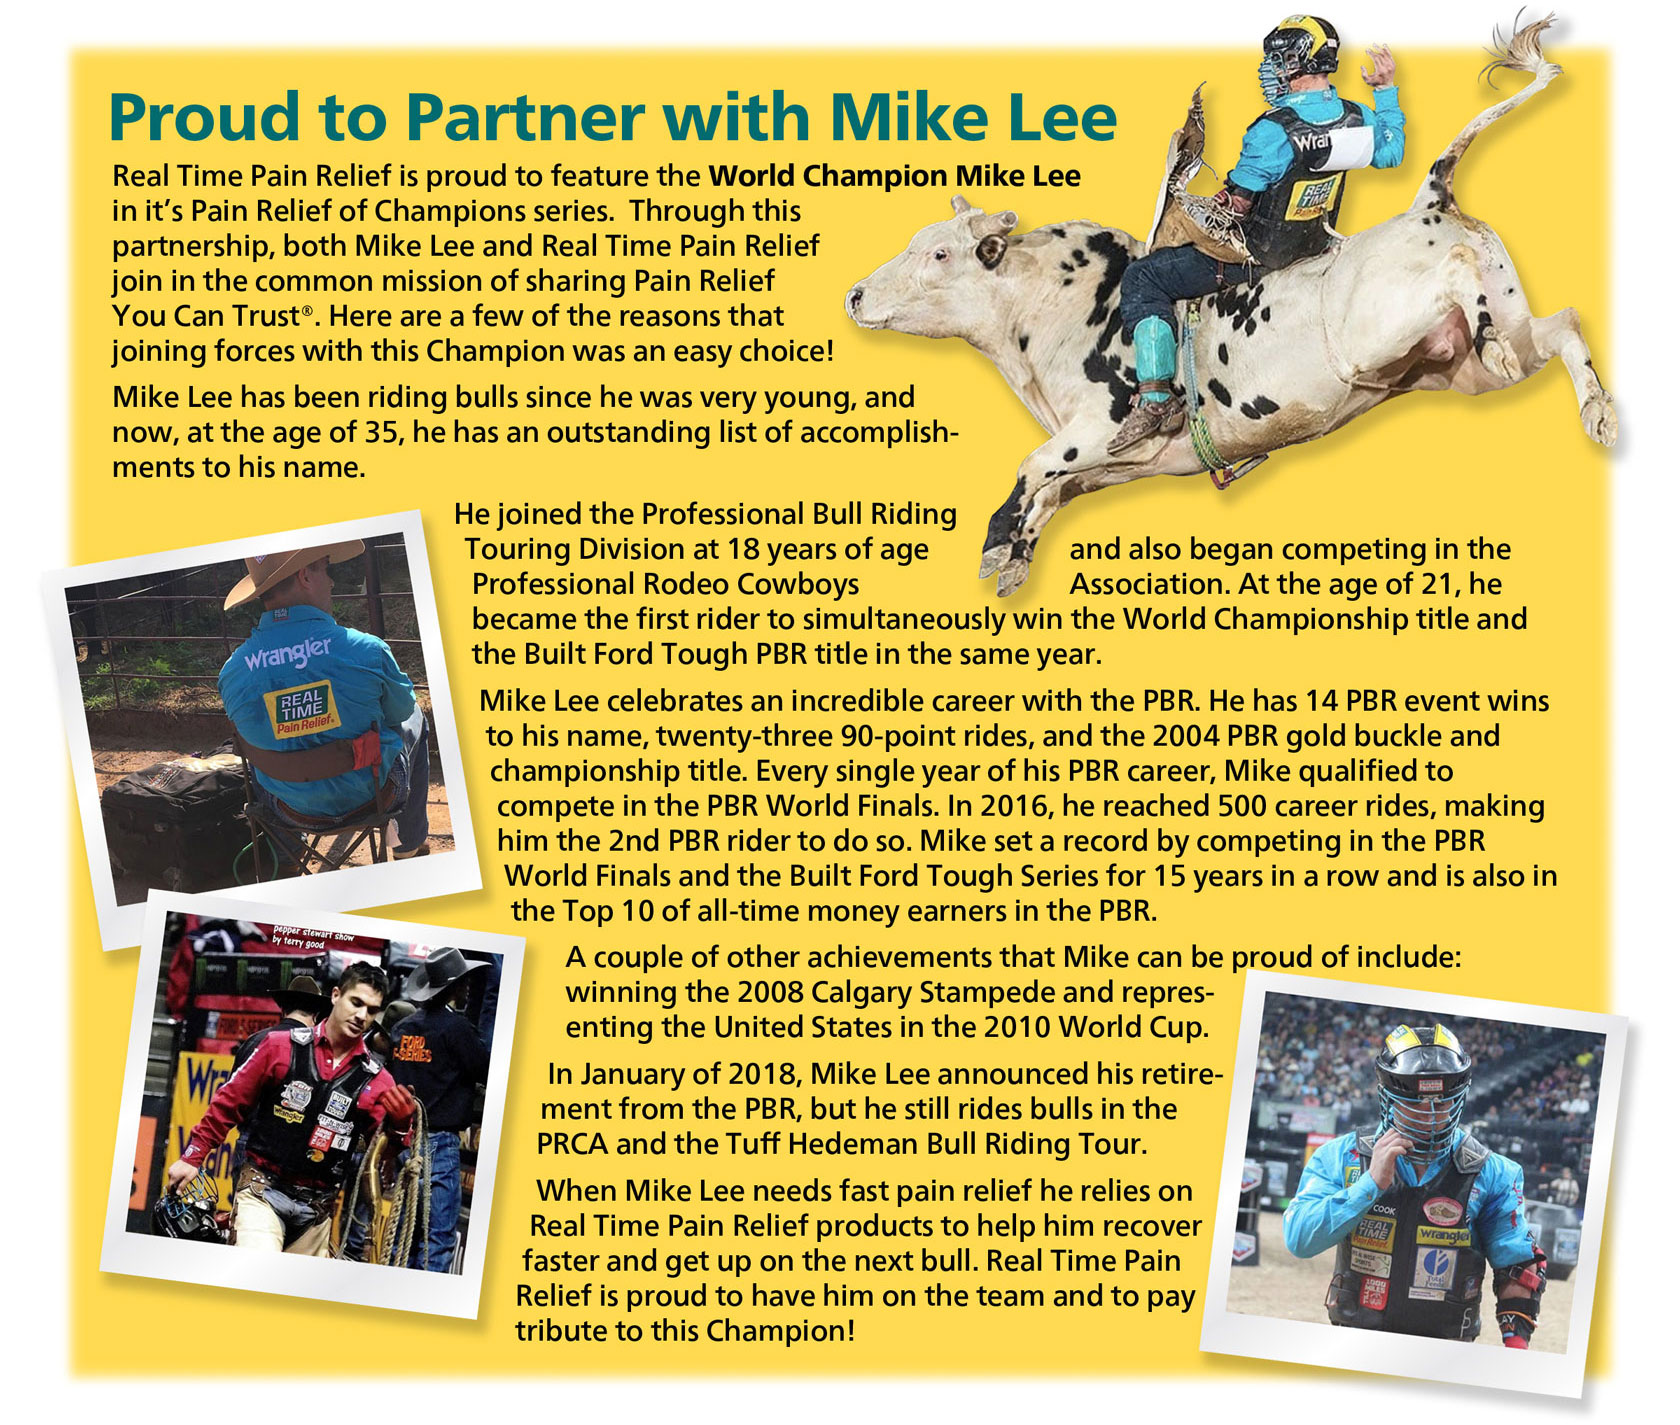 <span class='notranslate'>Real Time Pain Relief</span> is proud to introduce World Champion Professional Bull Rider, Mike Lee, as the first individual to be recognized in <span class='notranslate'>Real Time Pain Relief</span>'s Pain Relief of Champions Series